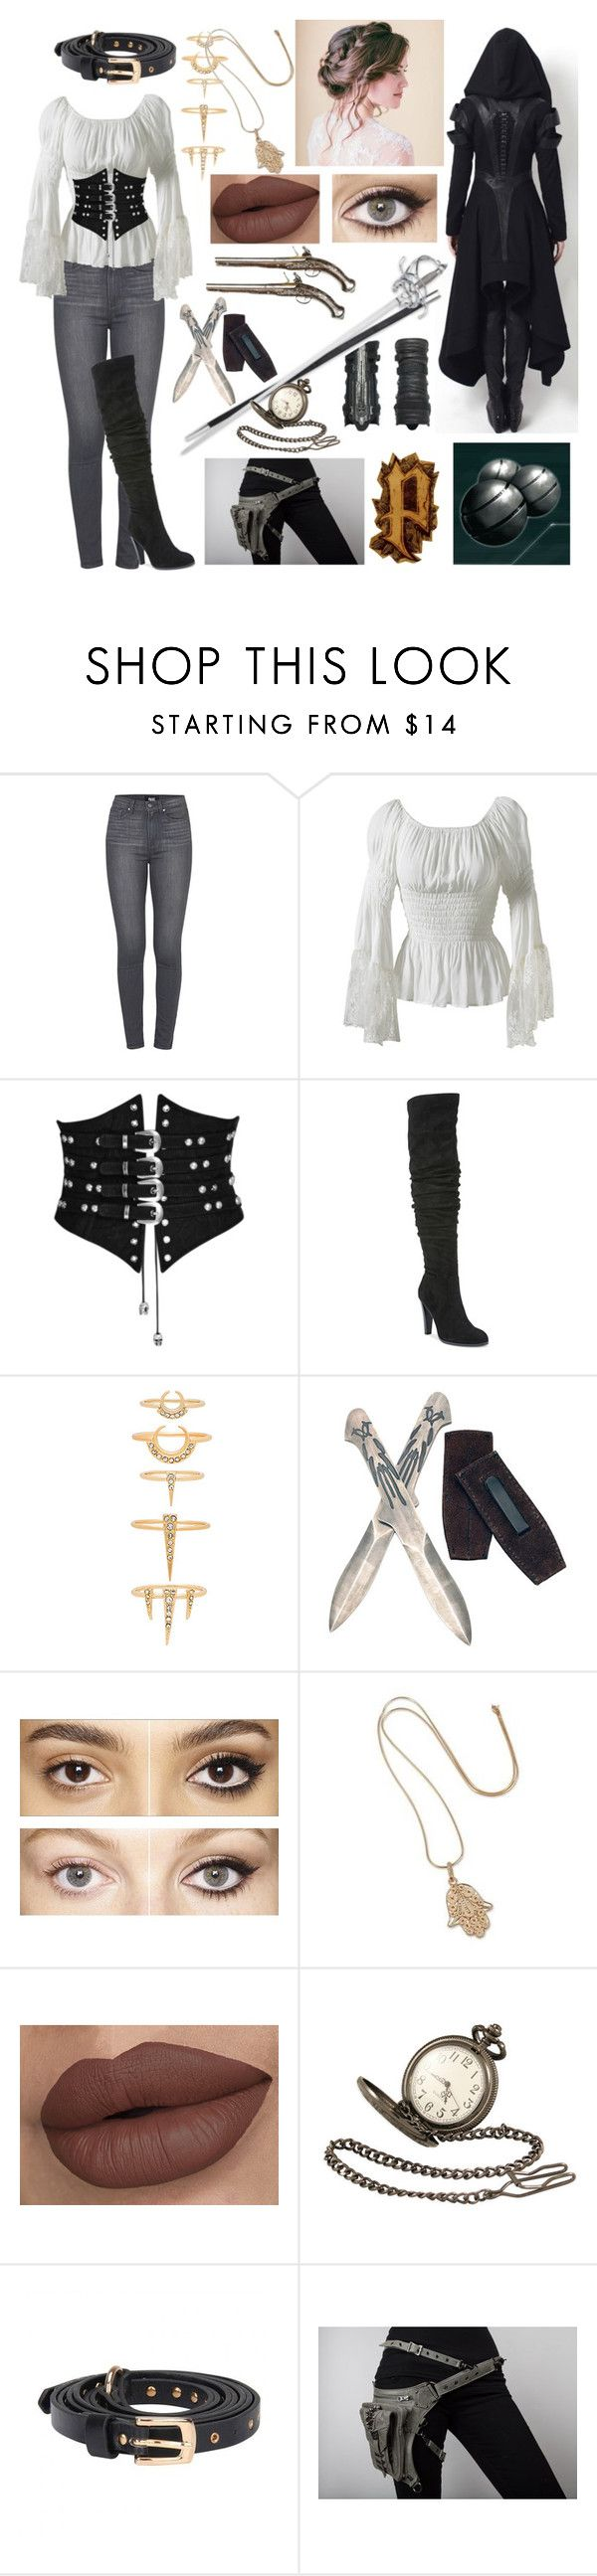 """Assassin's Creed Female Costume #2"" by e-sekovanikj ❤ liked on Polyvore featuring Paige Denim, Carlos by Carlos Santana, Luv Aj, Charlotte Tilbury, NOVICA, S.W.O.R.D., Black Pearl and Holster"